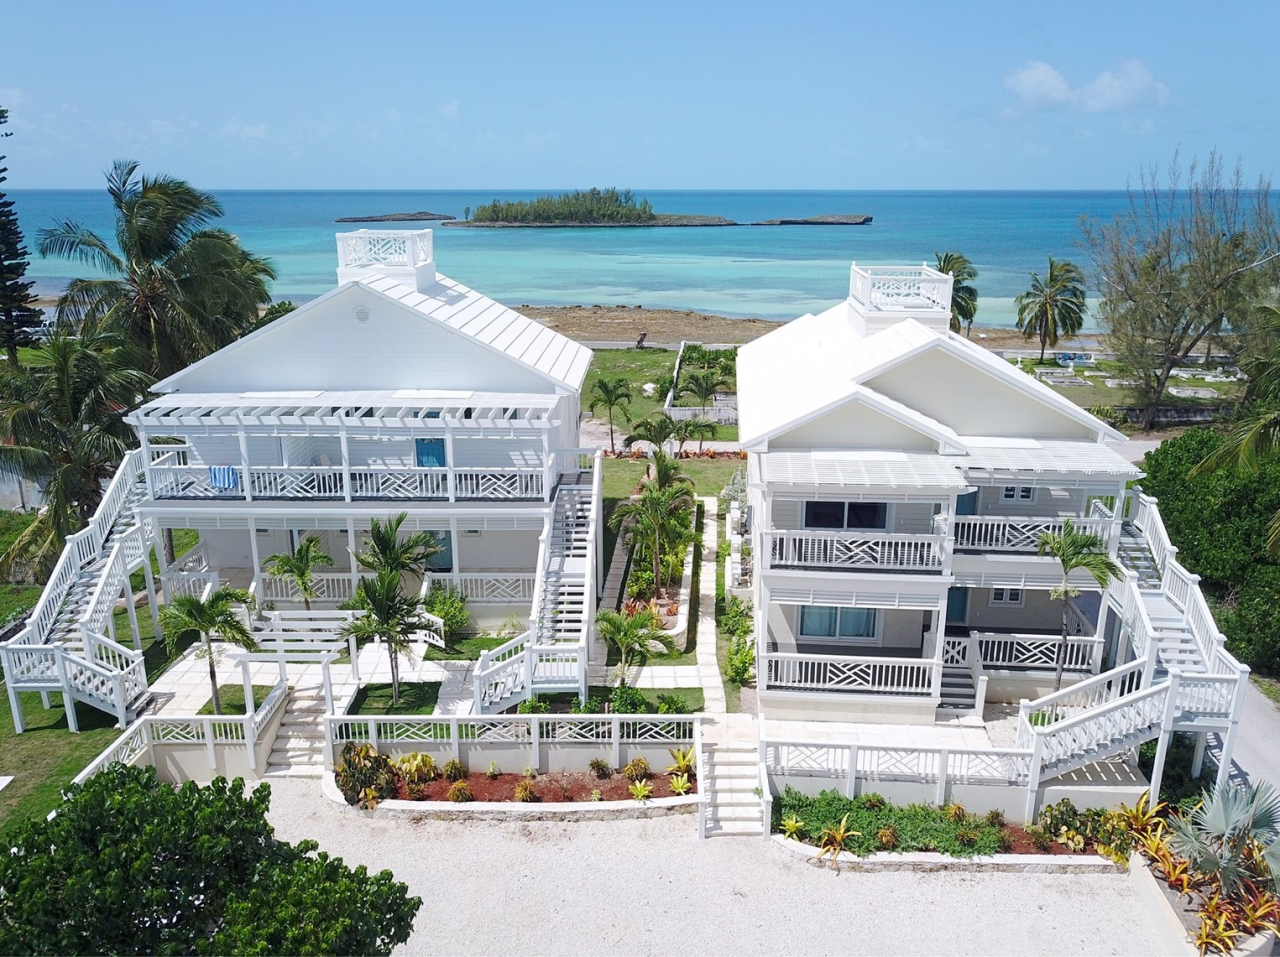 The Price is Right. Homes located inland such as those in Rainbow Bay and condominiums like Anchor Point (above) in Governors Harbour, Eleuthera, are getting a lot of attention from buyers this winter as homeowners look for economical ways to enter into the housing market on mainland Eleuthera.